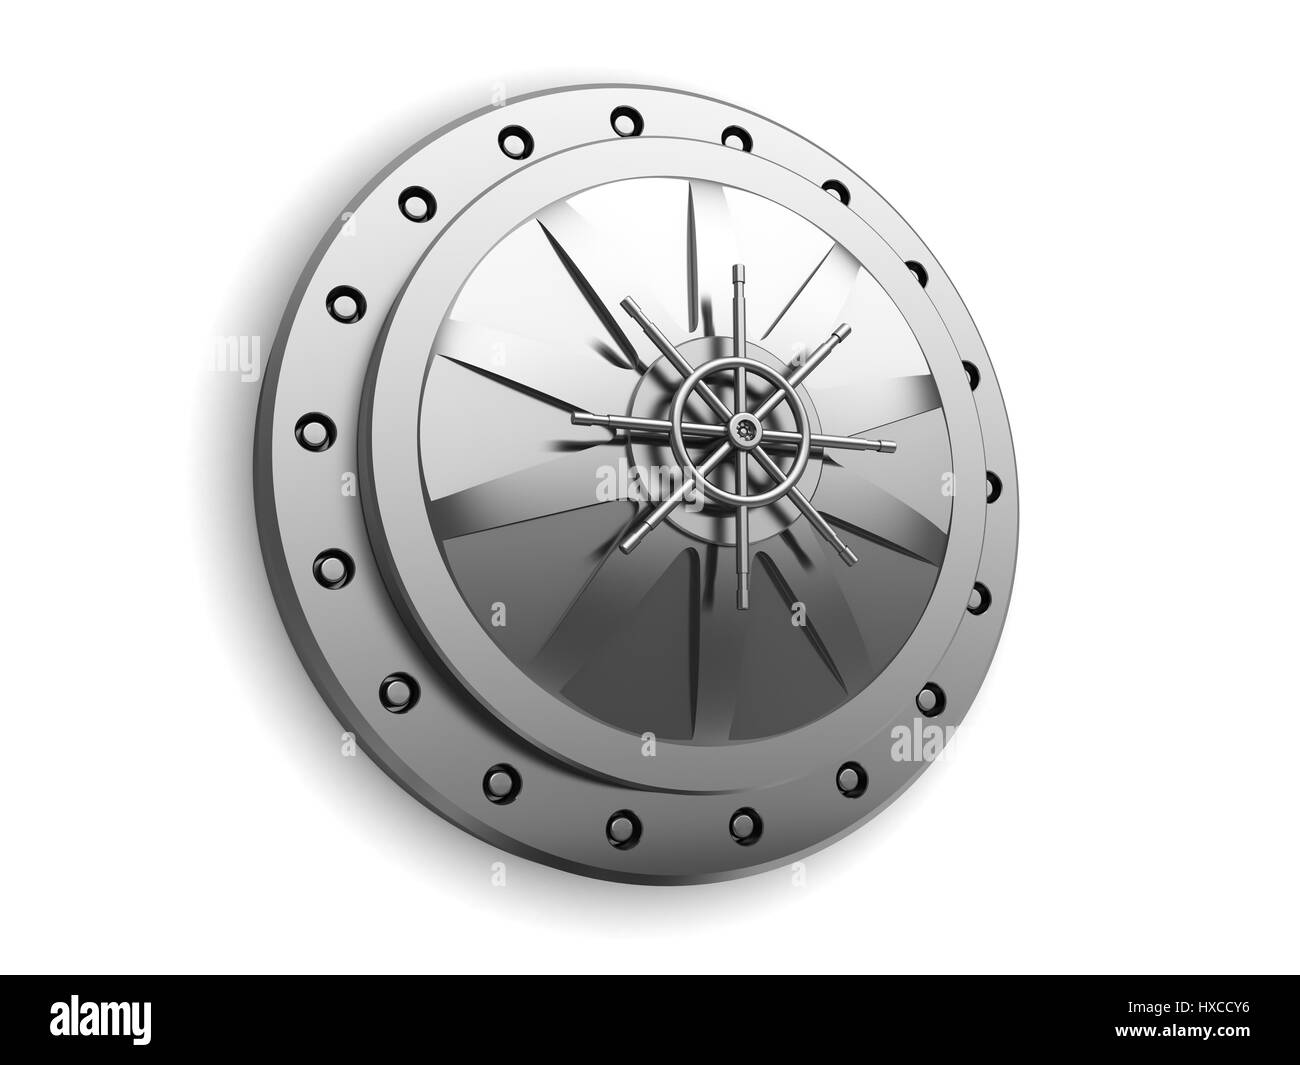 3d illustration of closed vault door over white background - Stock Image